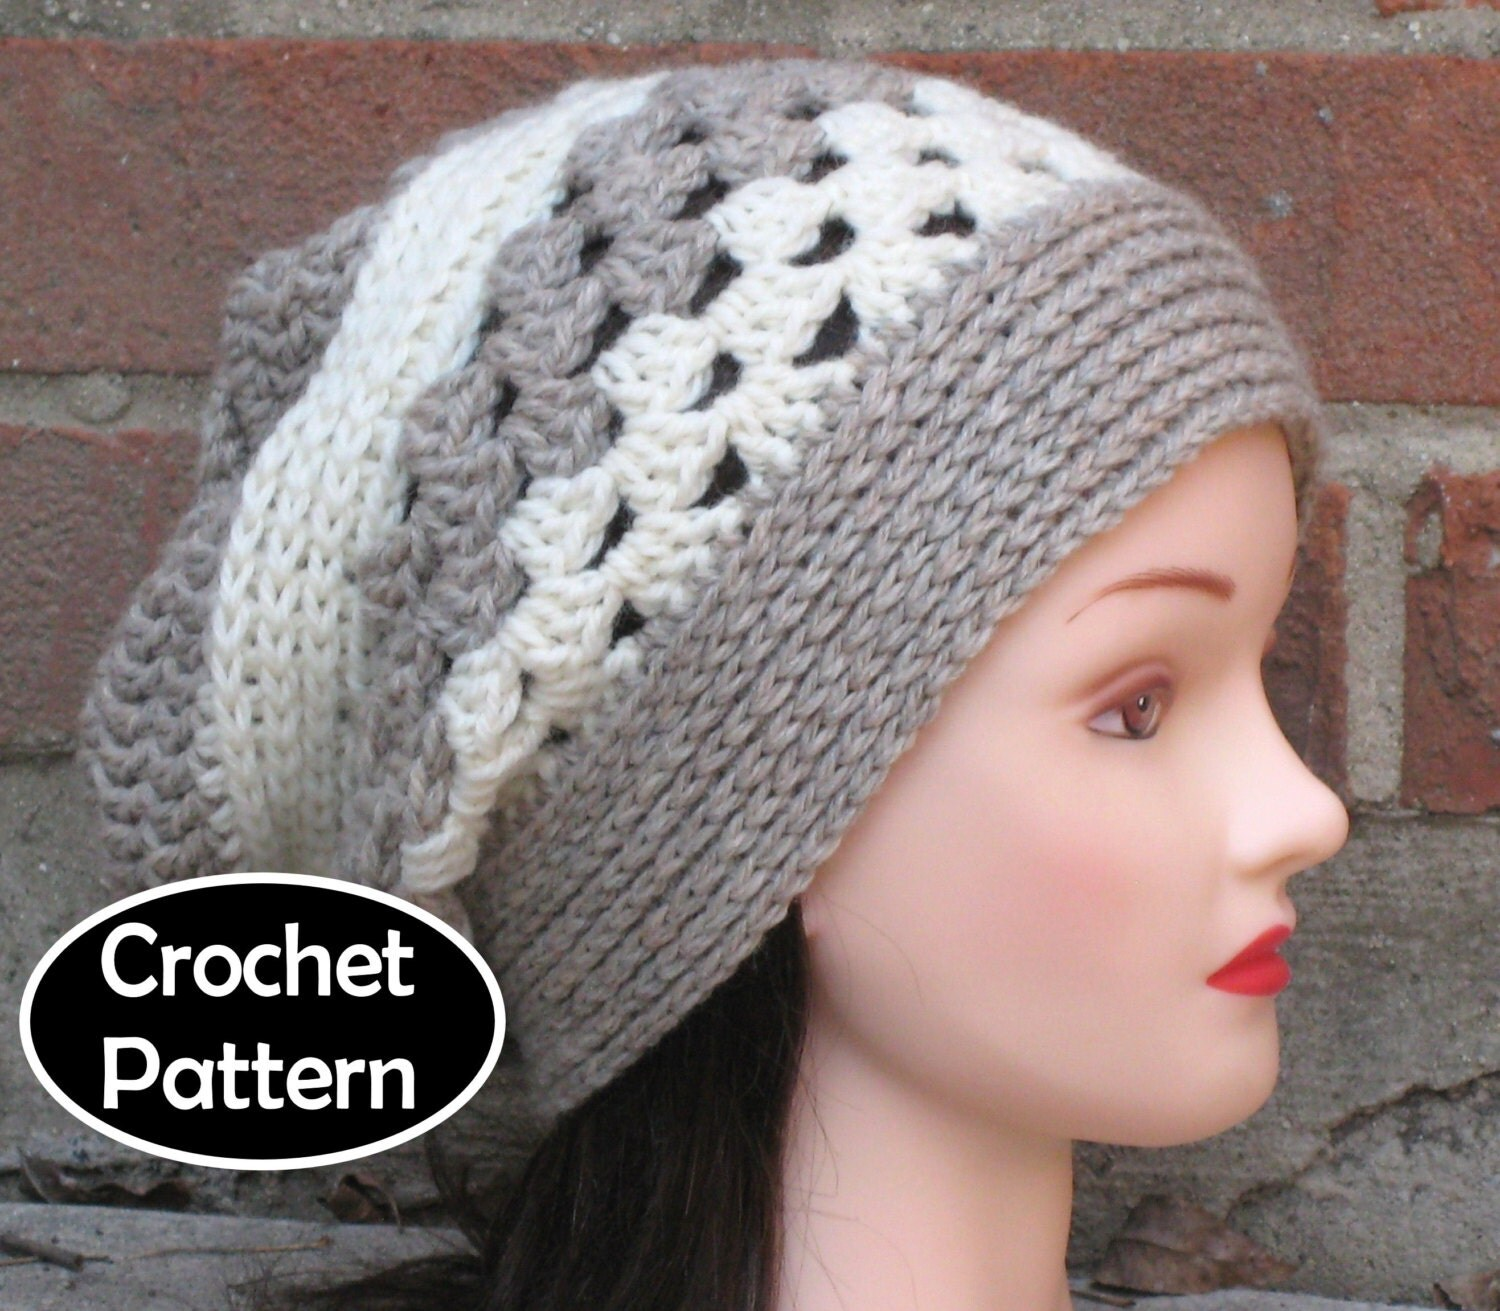 Crochet Hat Pattern Download : CROCHET HAT PATTERN Pdf Instant Download Whisper Slouchy